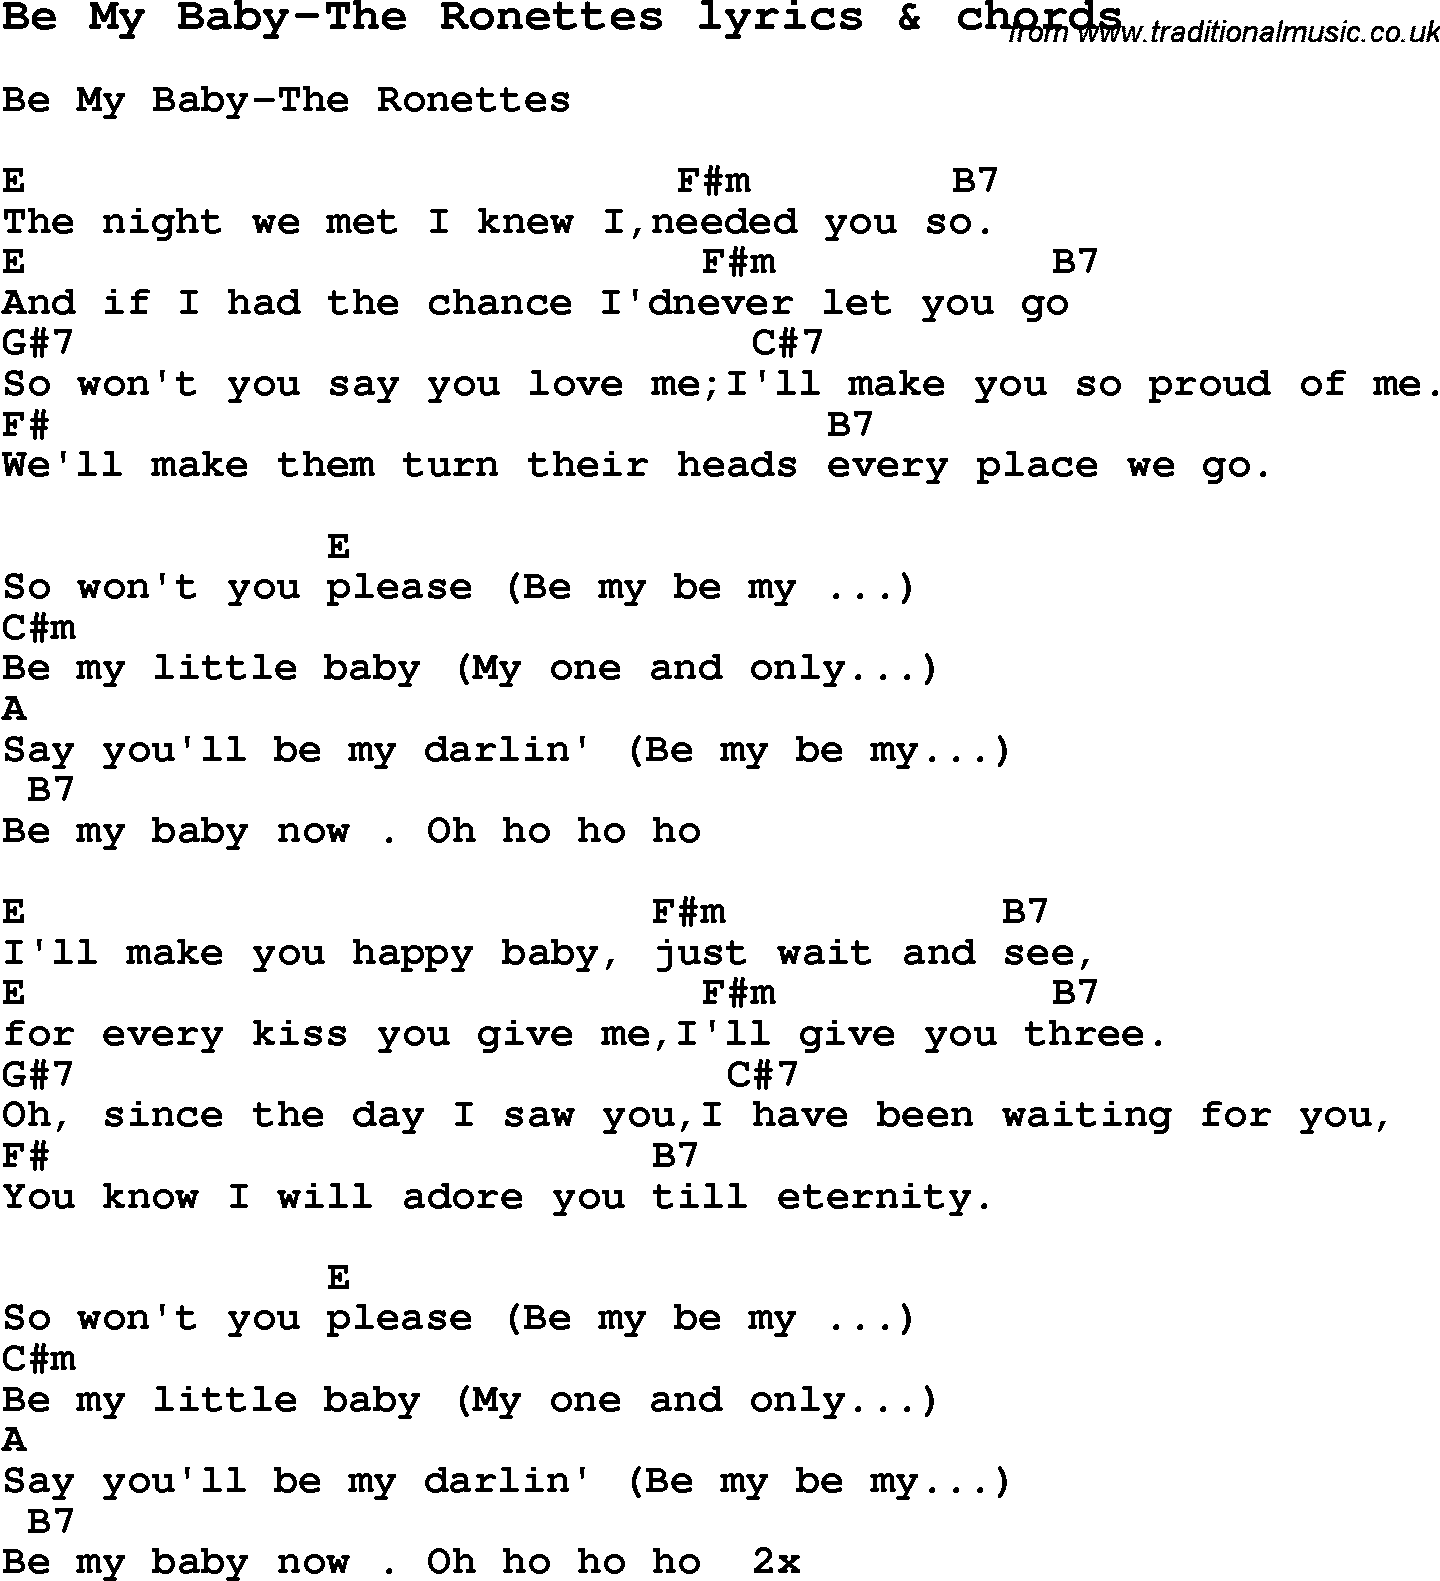 Love Song Lyrics For Be My Baby The Ronettes With Chords For